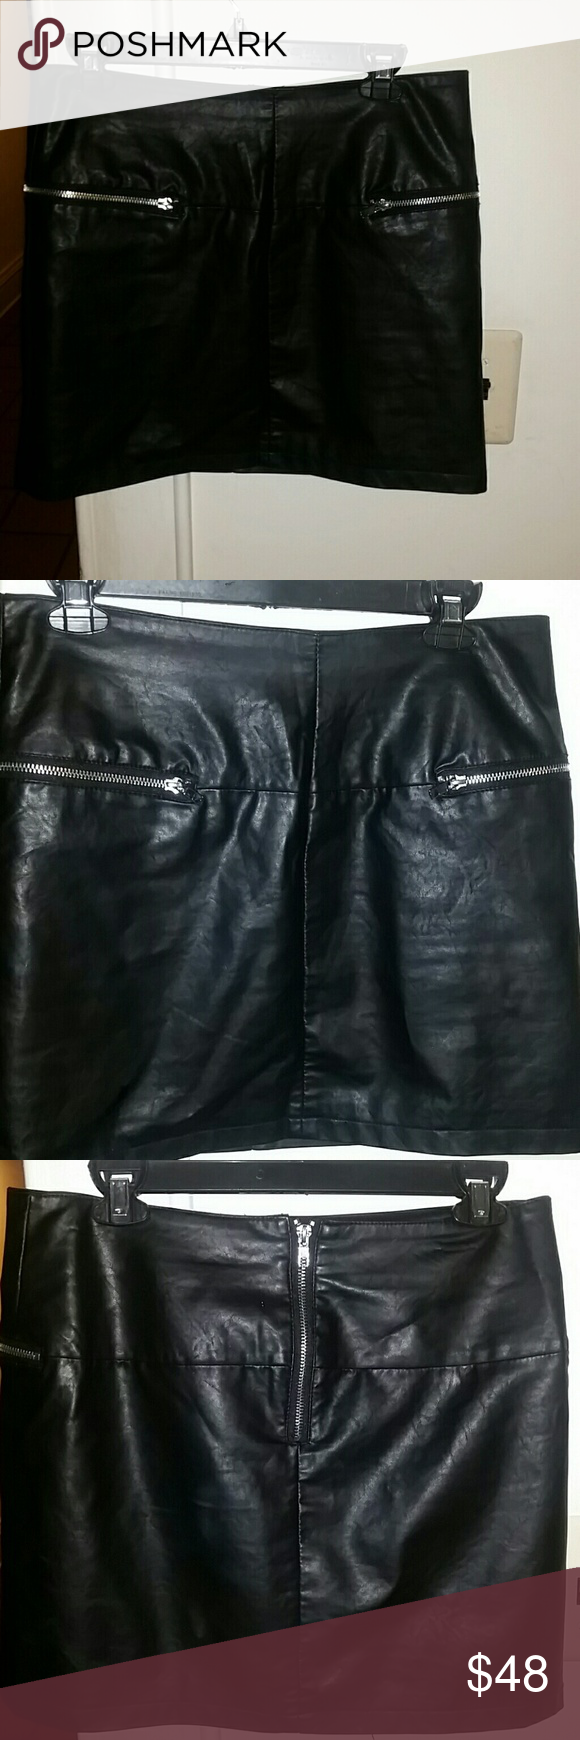 Vegan leather mini skirt❤Discounted shipping ava. Sexy, faux leather, skirt from 'Forever 21'. In great condition, only worn a handful of times. Lined, zipper in the back &2 front zippered pockets. Please refer to pics 5 & 6 for imperfections  (indents at the top from being hung on a hanger), not noticeable at all unless you're staring at wasteband  2 inches away. Smoke free, clean, pet friendly home.  ✔Price firm unless bundled -PM takes 20%😰 ✔For DISCOUNTED SHIPPING: tag me when you're…